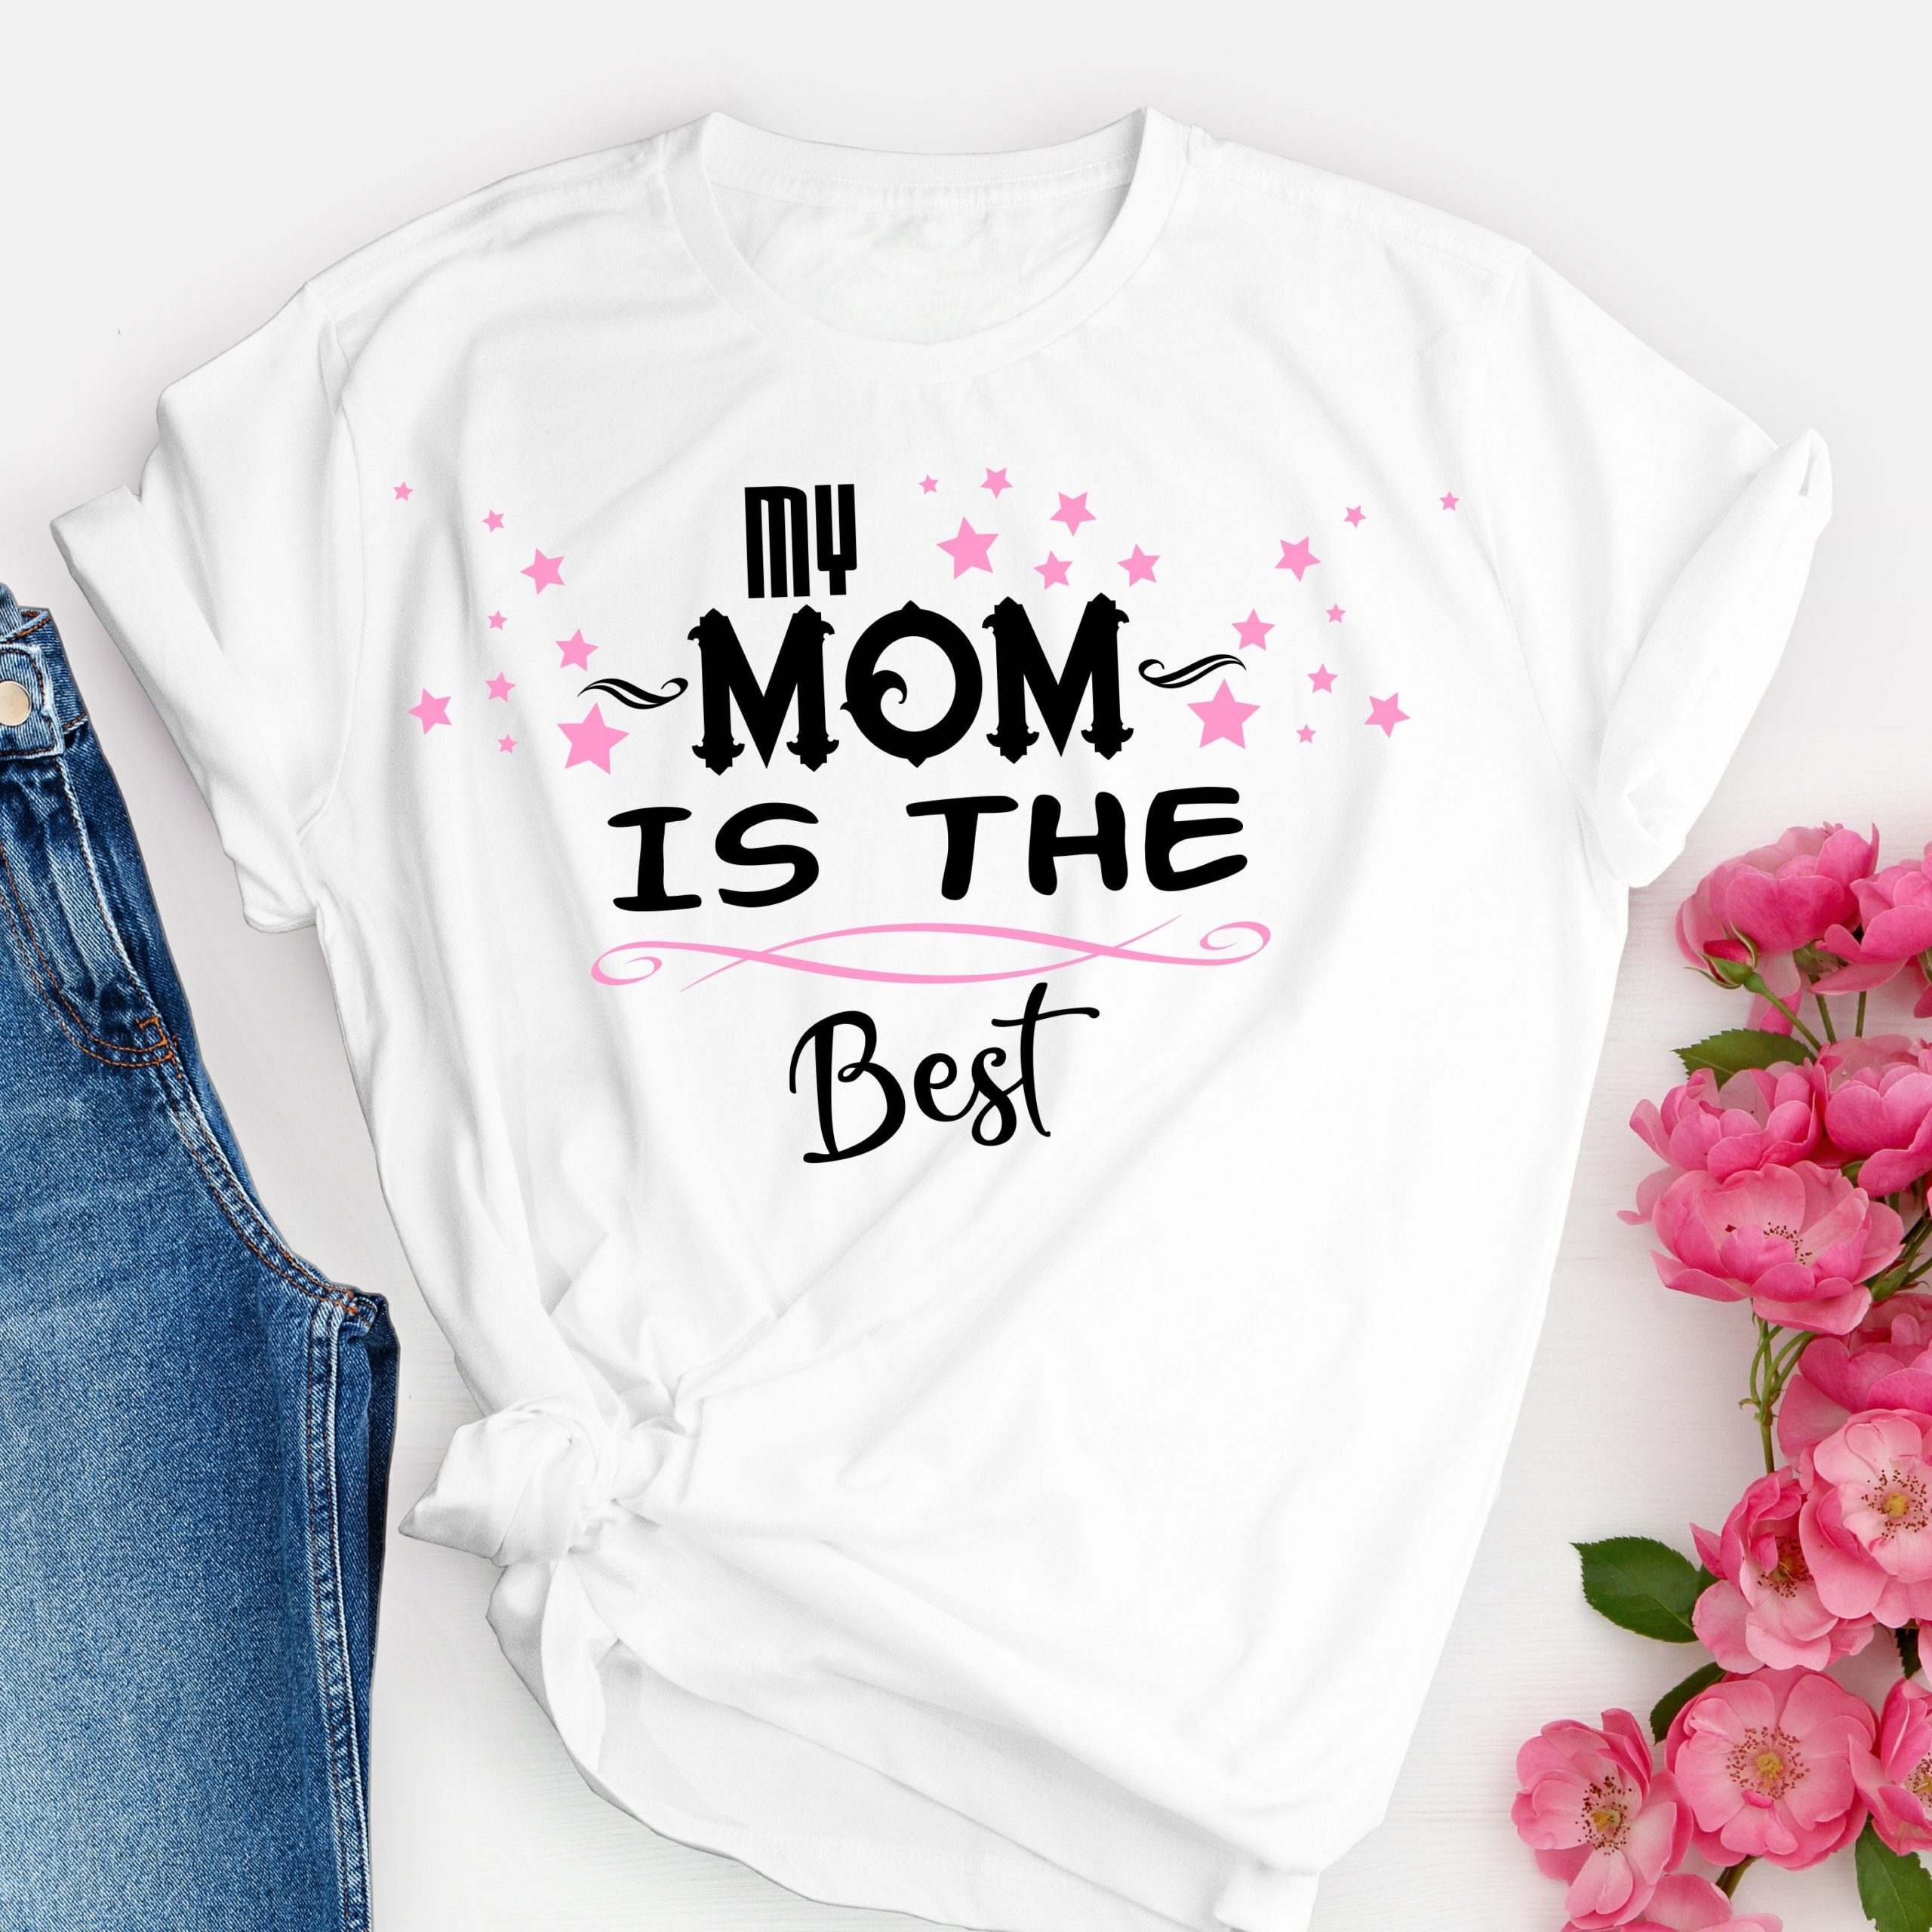 Free Download for free in png, svg, pdf formats 👆. Mothers Day Svg Mom Svg Svg My Mom Is The Best Svg Svg Eps Dxf Clover Svg Happy Mothers Day Svg File For Cricut Svg For Cricut Svg For Cricut SVG, PNG, EPS, DXF File